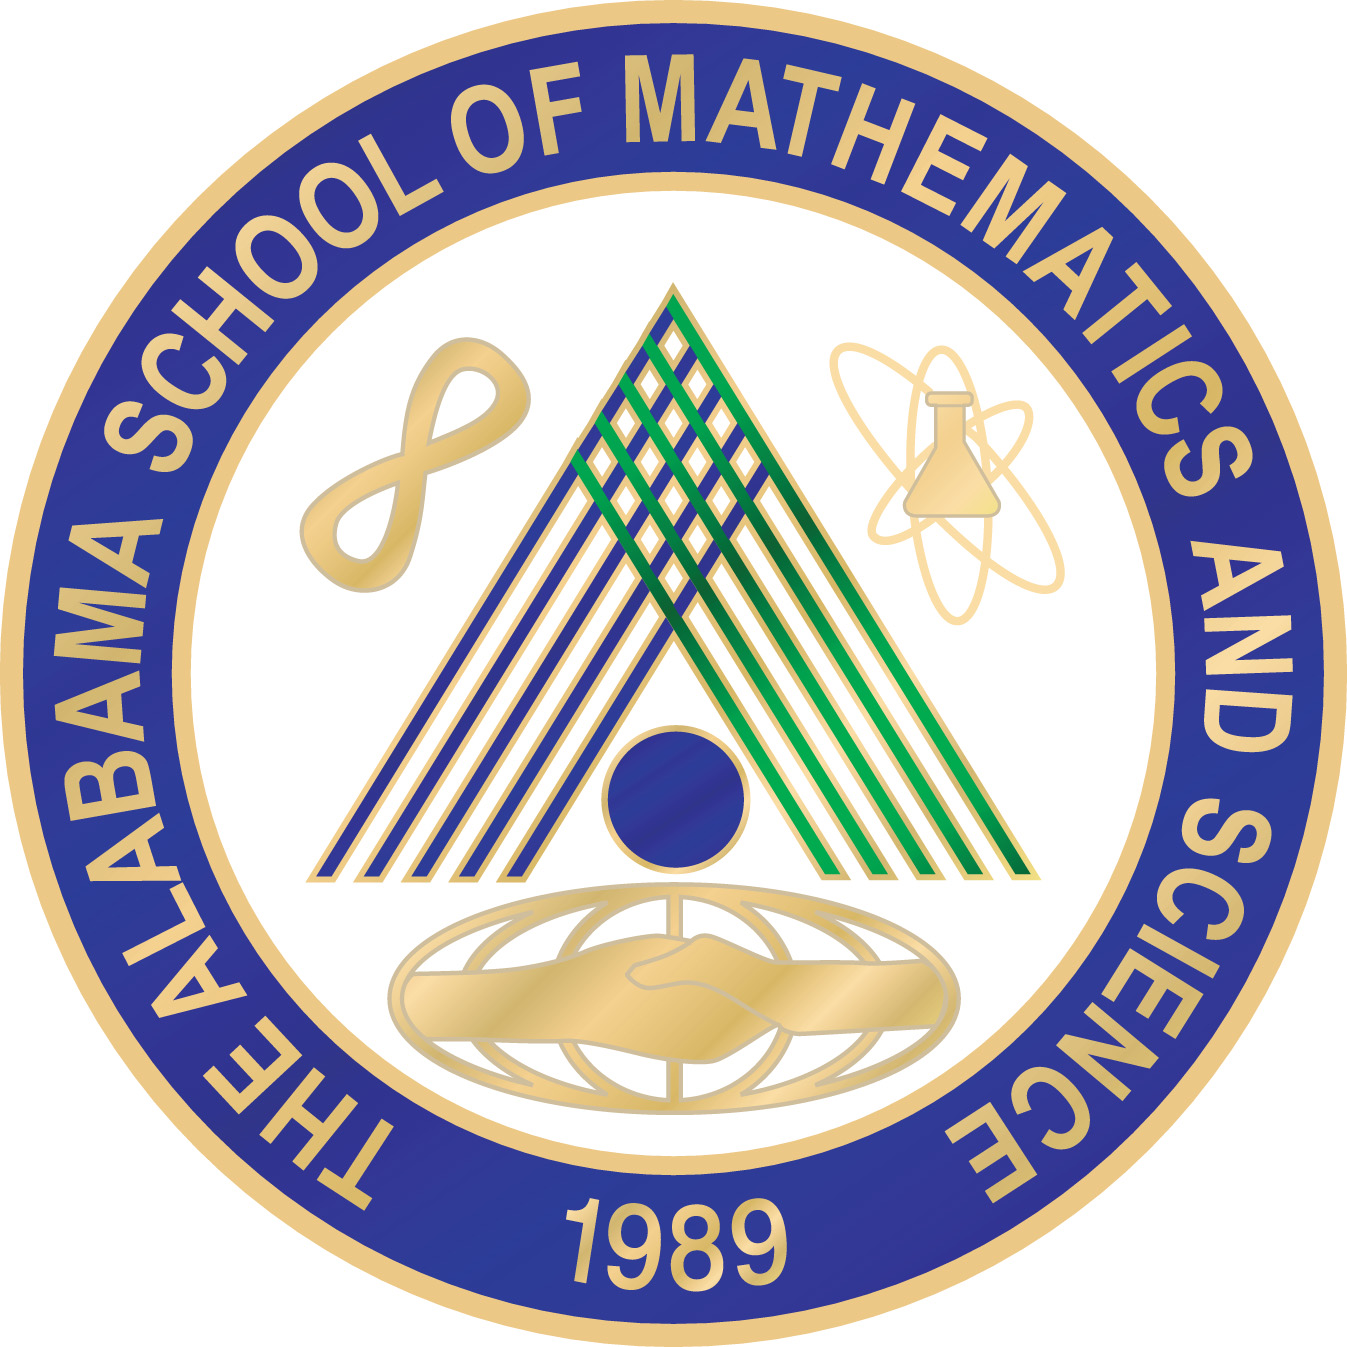 Alabama School of Math and Science